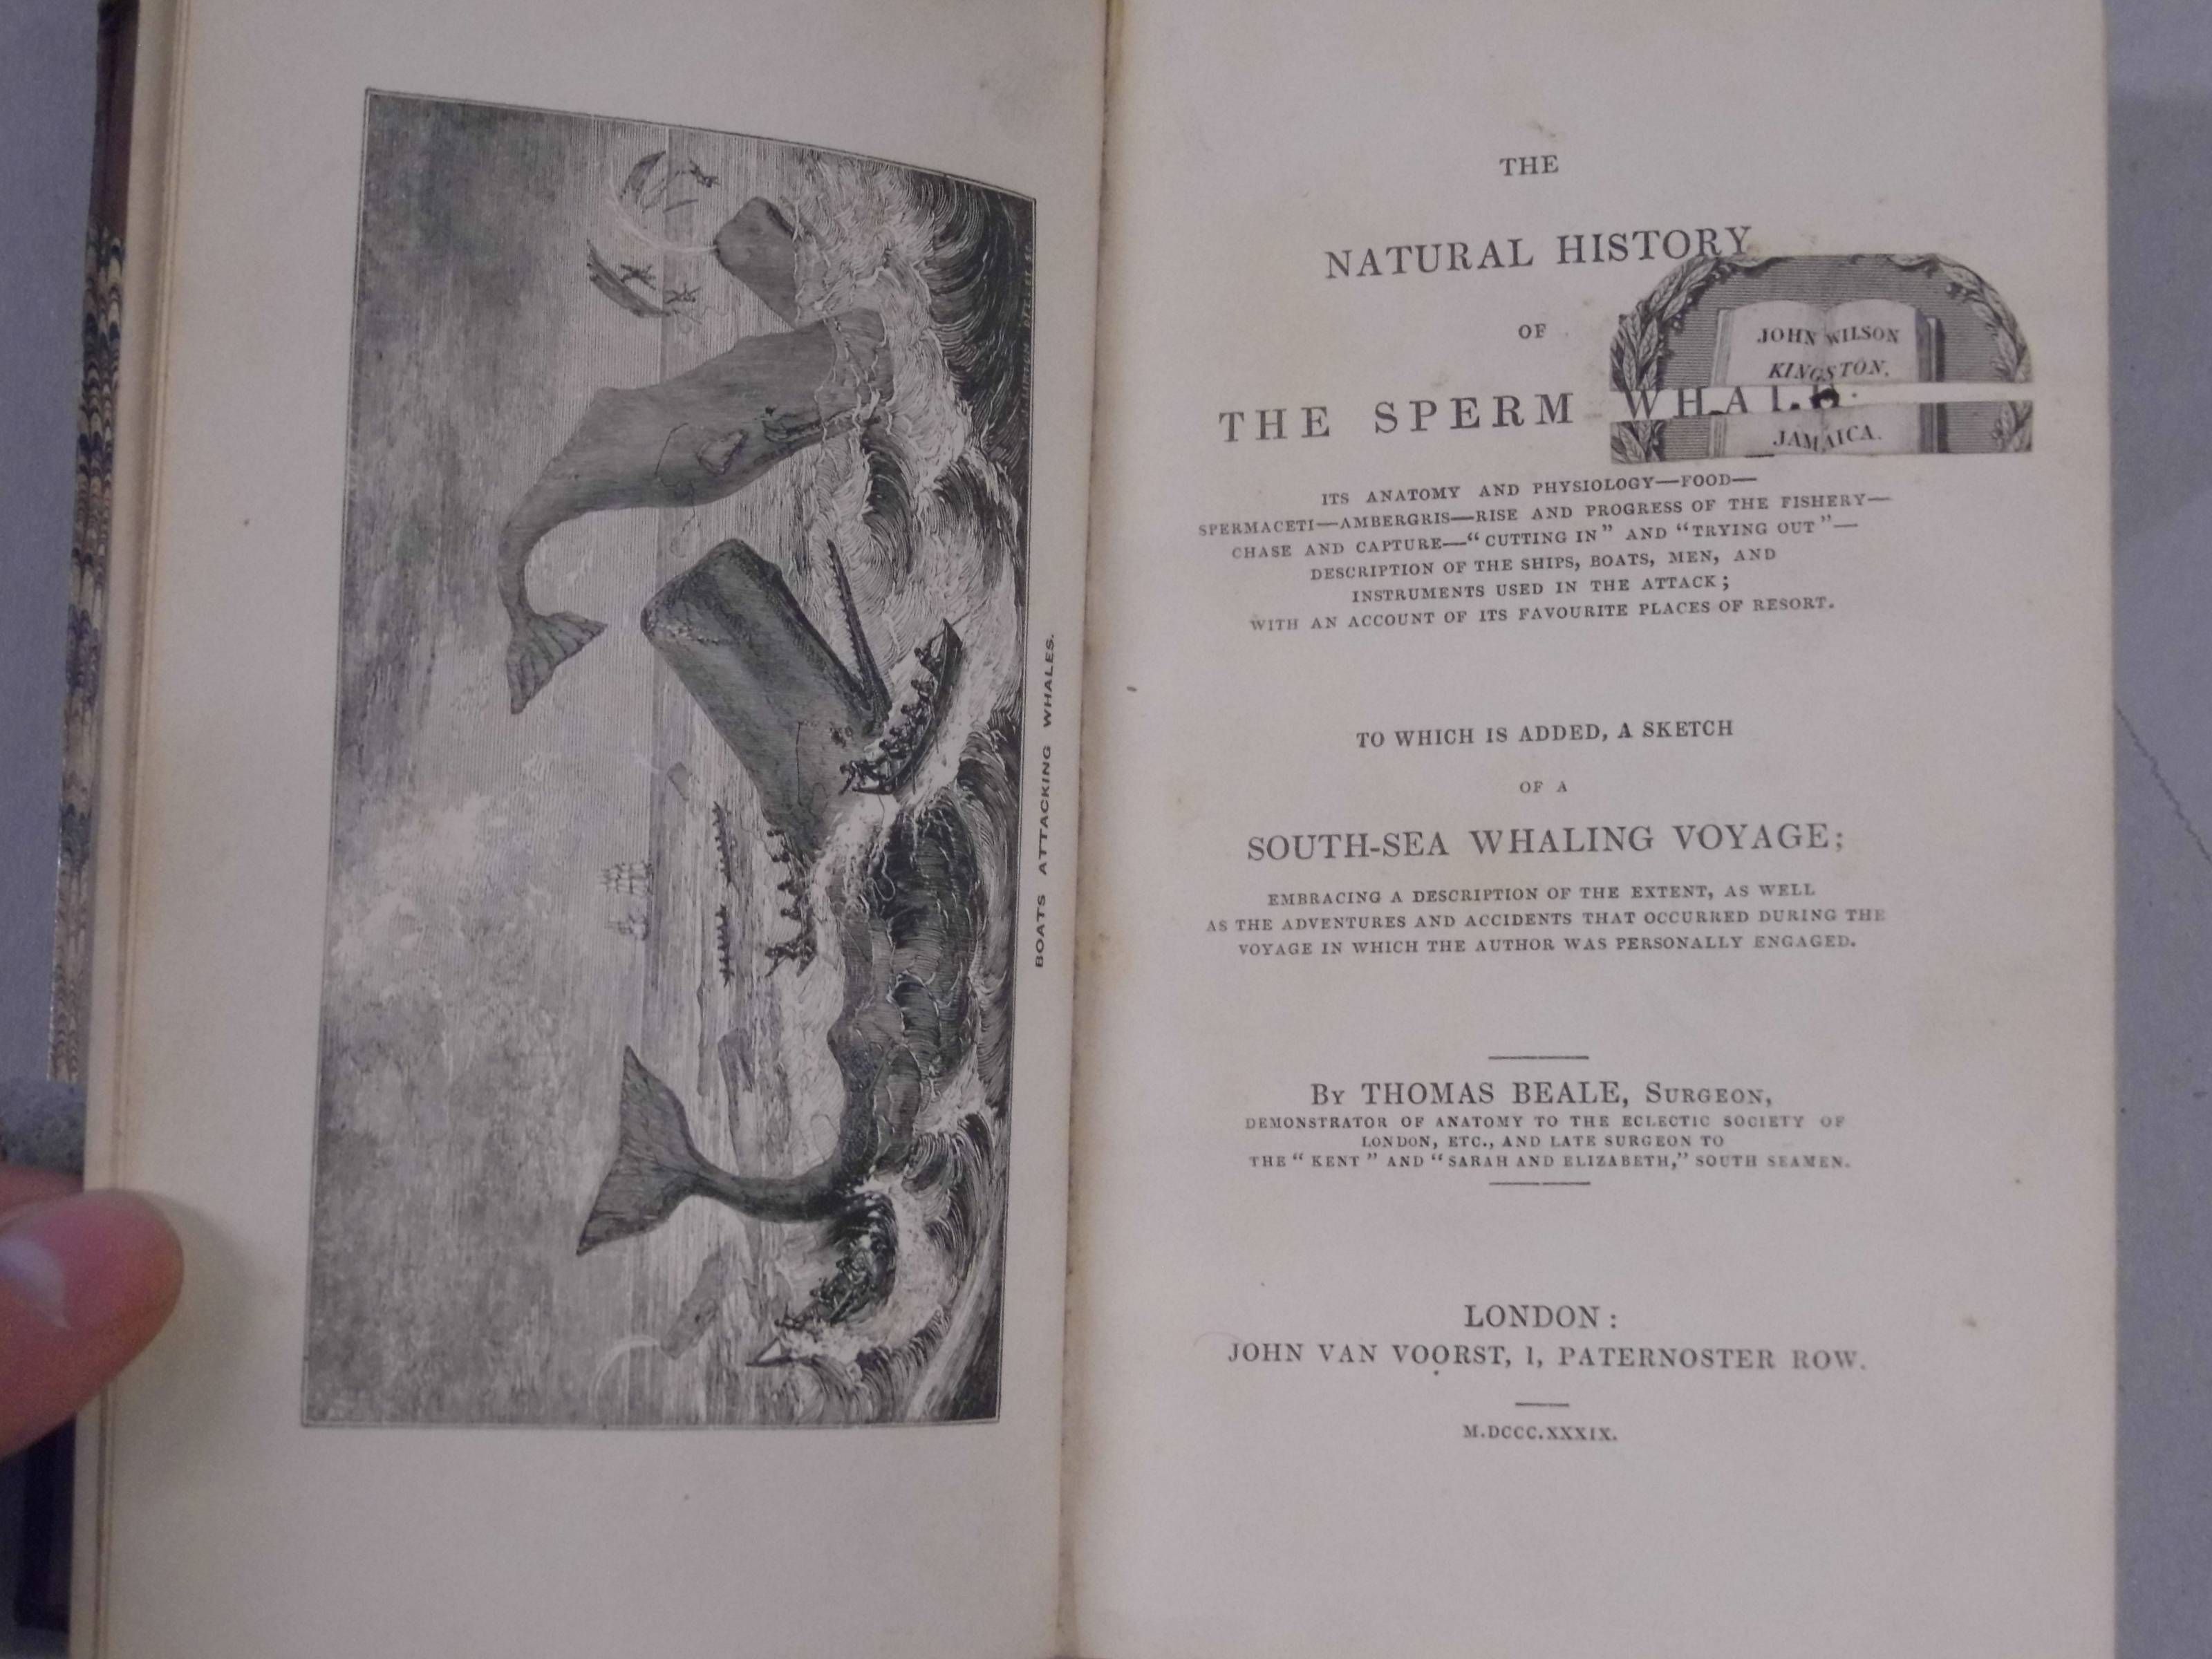 Lot 13 Beale Thomas The Natural History Of The